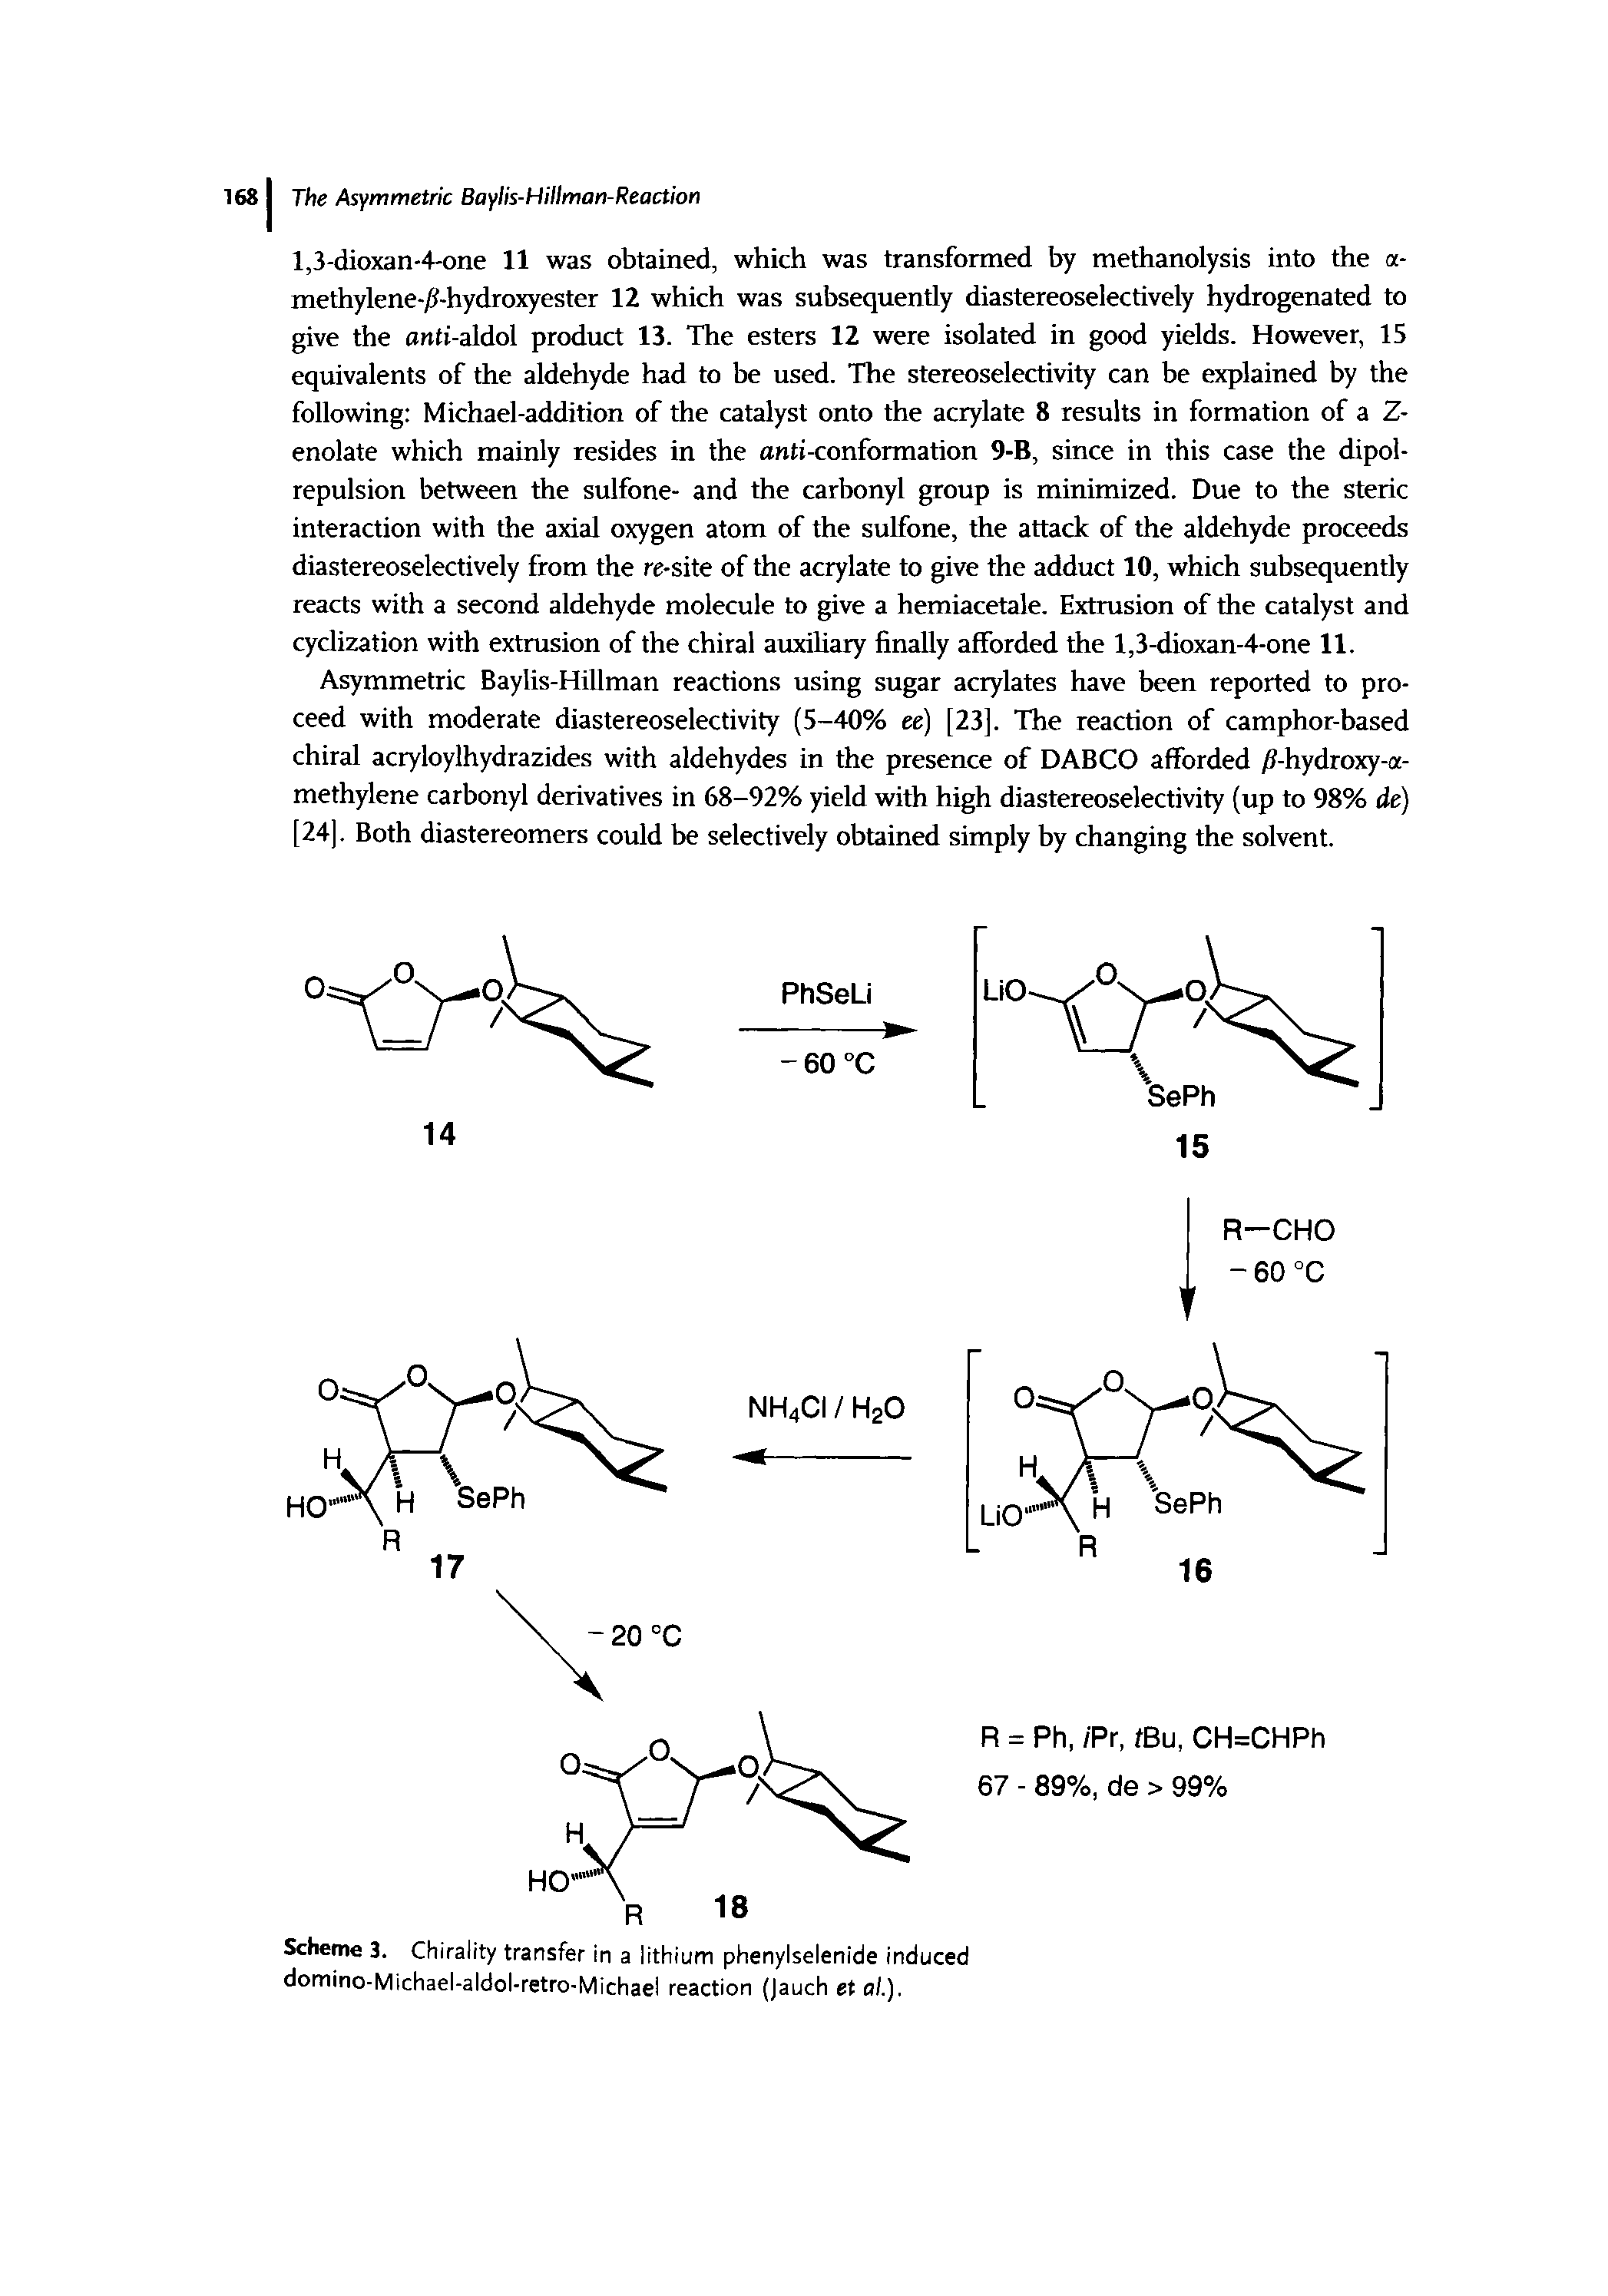 "Scheme 3. <a href=""/info/chirality_transfer"">Chirality transfer</a> in a lithium phenylselenide induced <a href=""/info/retro_aldol_michael_domino_reactions"">domino-Michael-aldol-retro-Michael</a> reaction (Jauch et al.)."